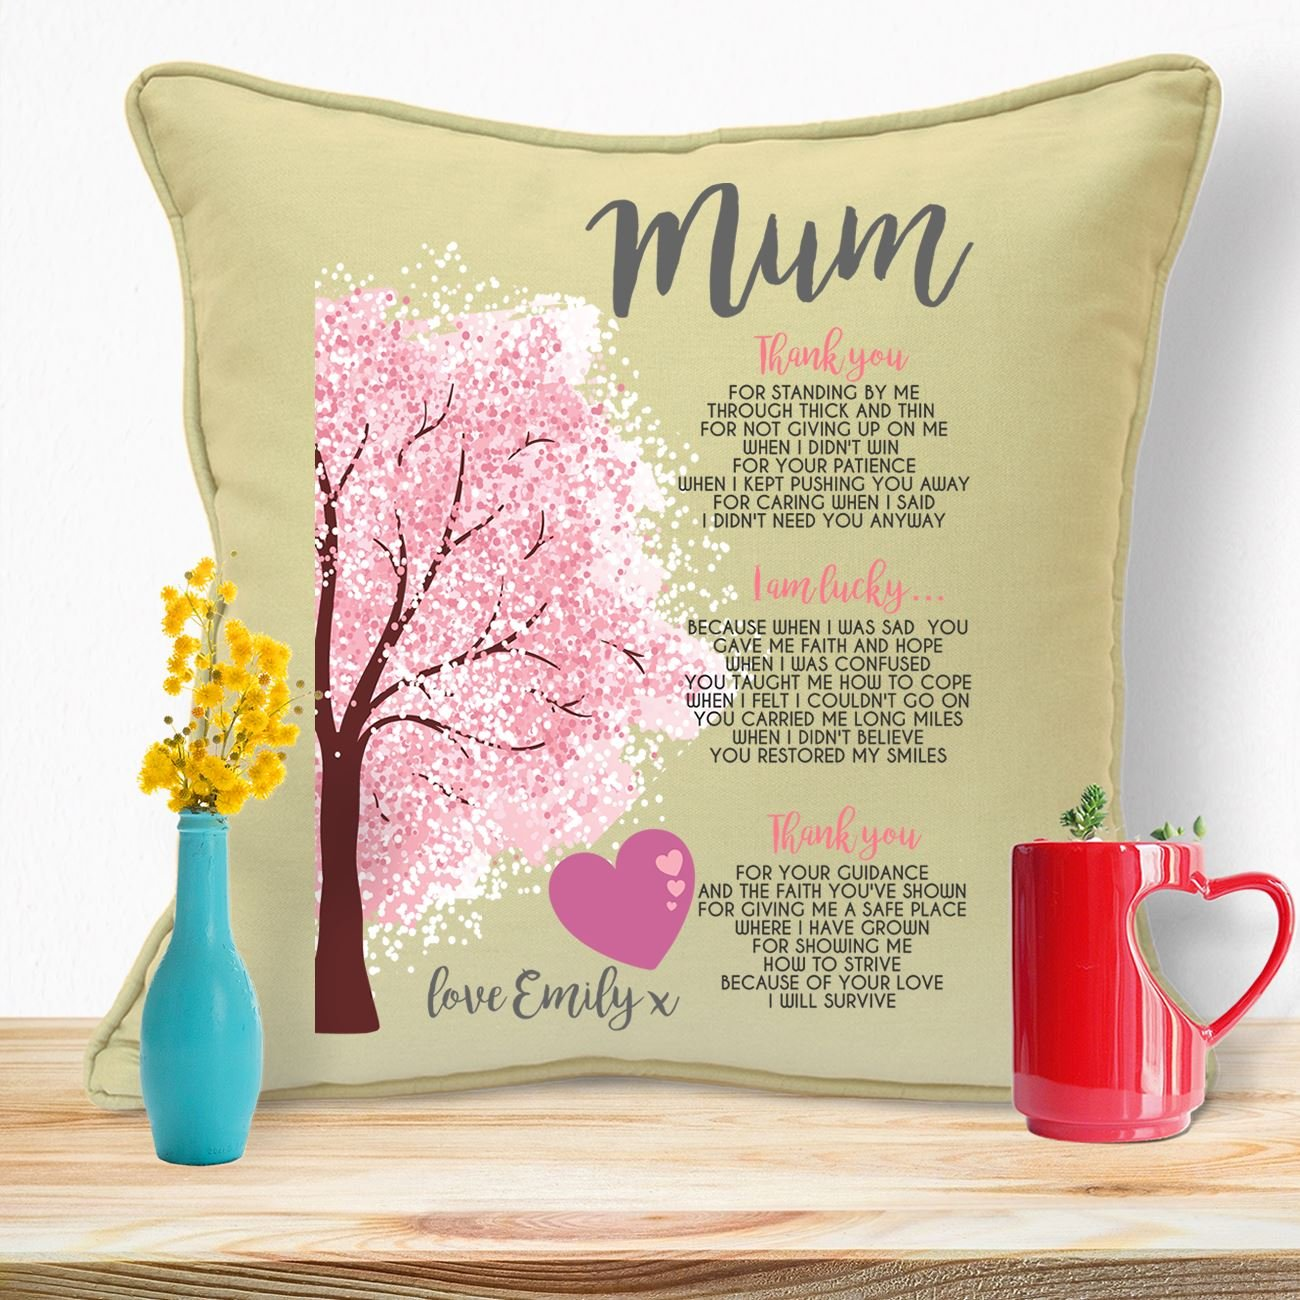 Personalised Gifts For Mummy Mums Moms Grandma Nana Nanny Mother In Law Mothers Day Birthday Christmas Anniversary From Daughter Son Newborn Baby Kids Children Long Distance Ideas Family Tree Cushion